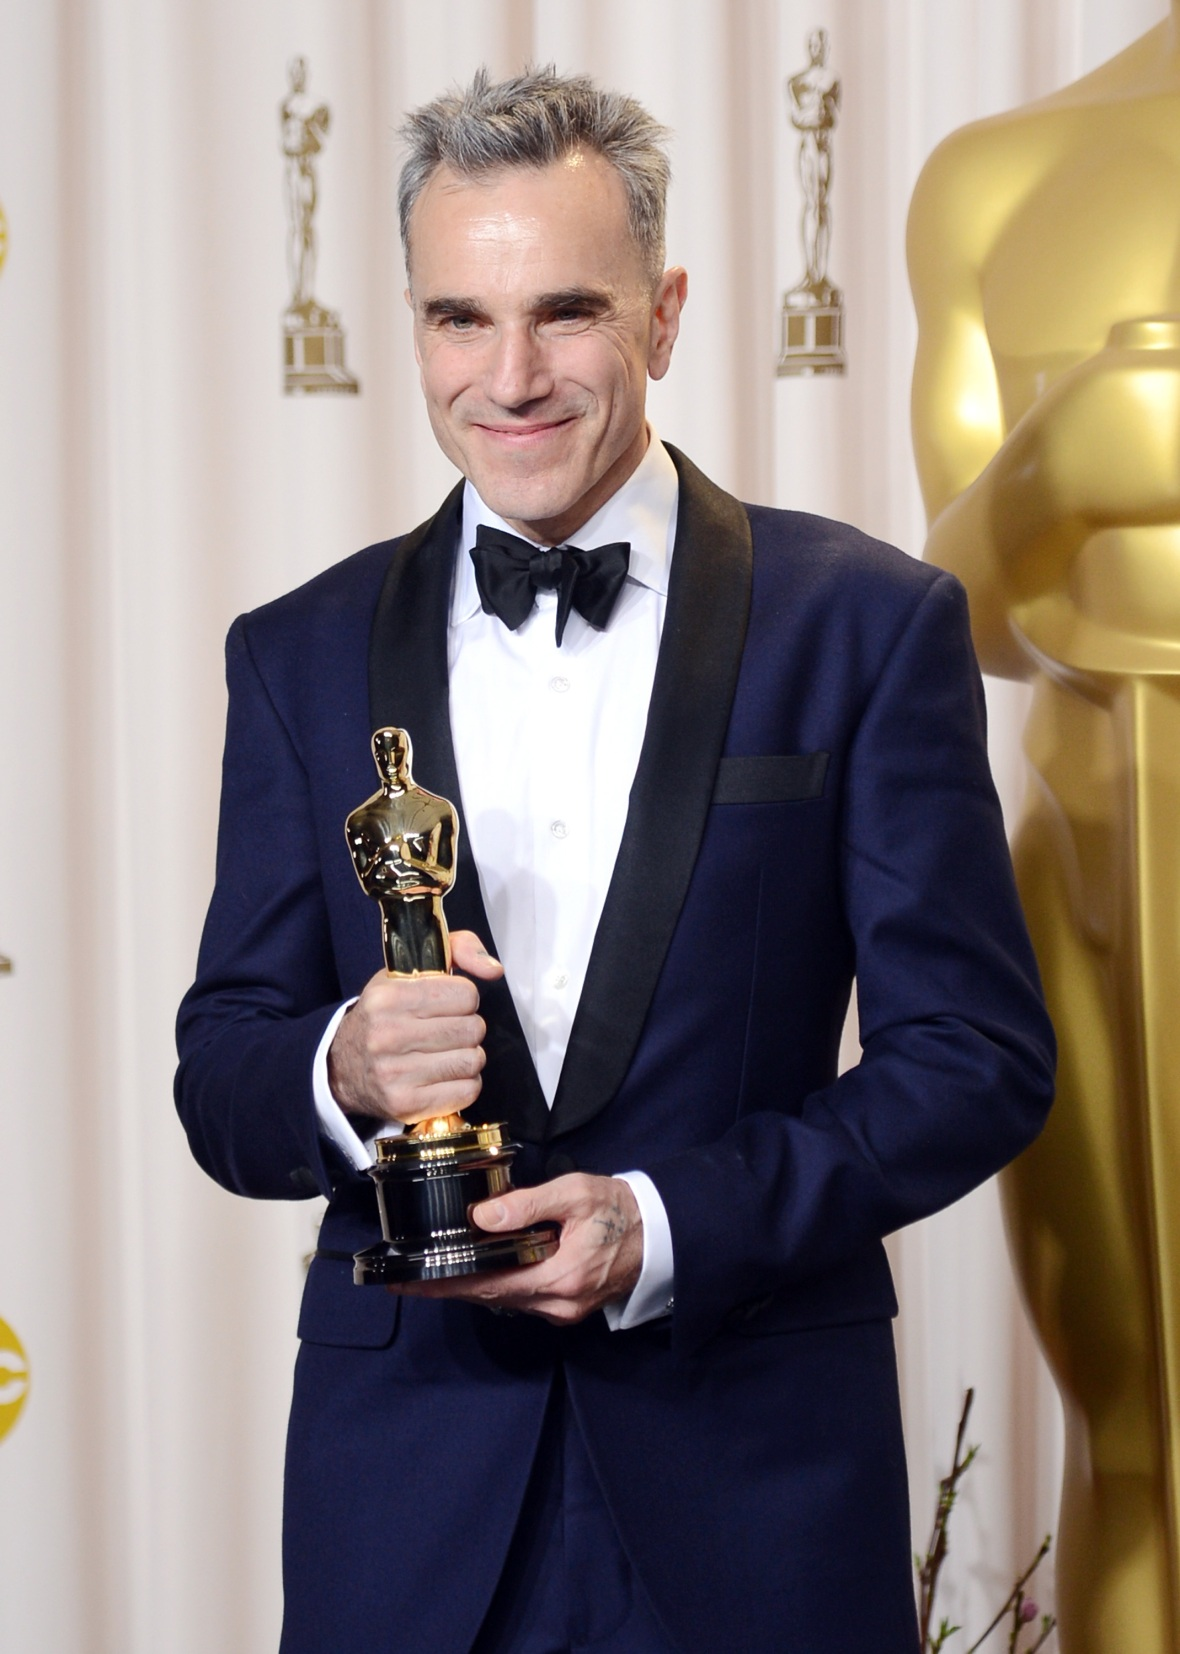 daniel day-lewis getty images